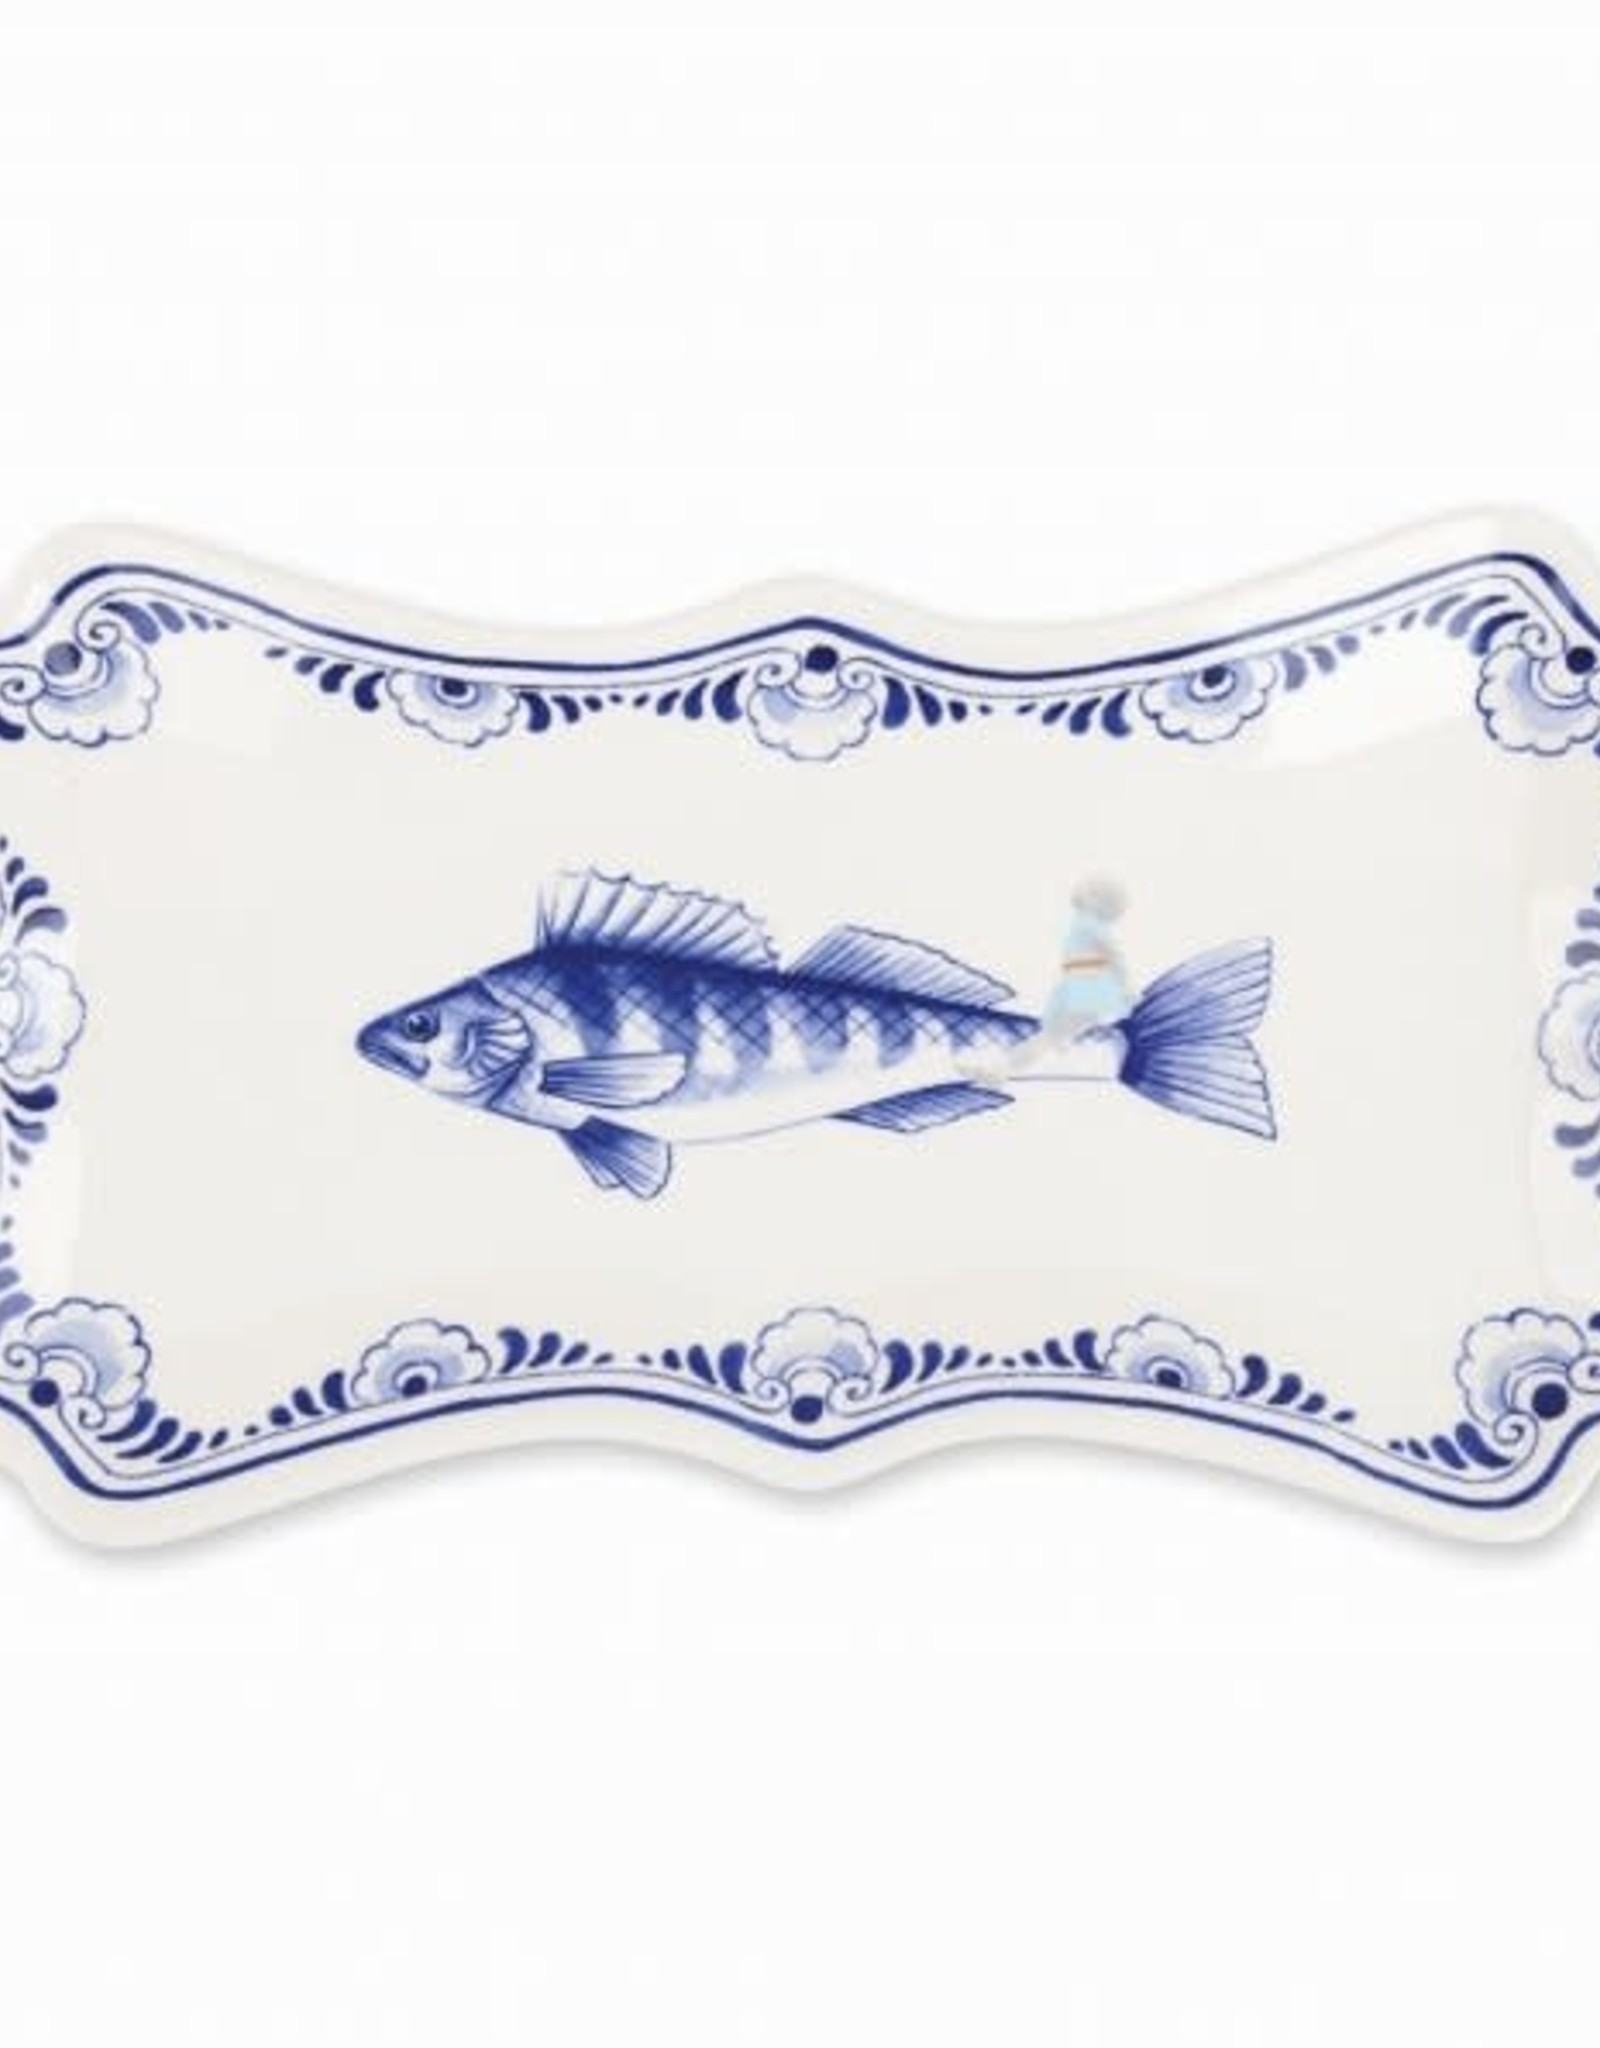 Herring Plate Storytile - The Free Rider